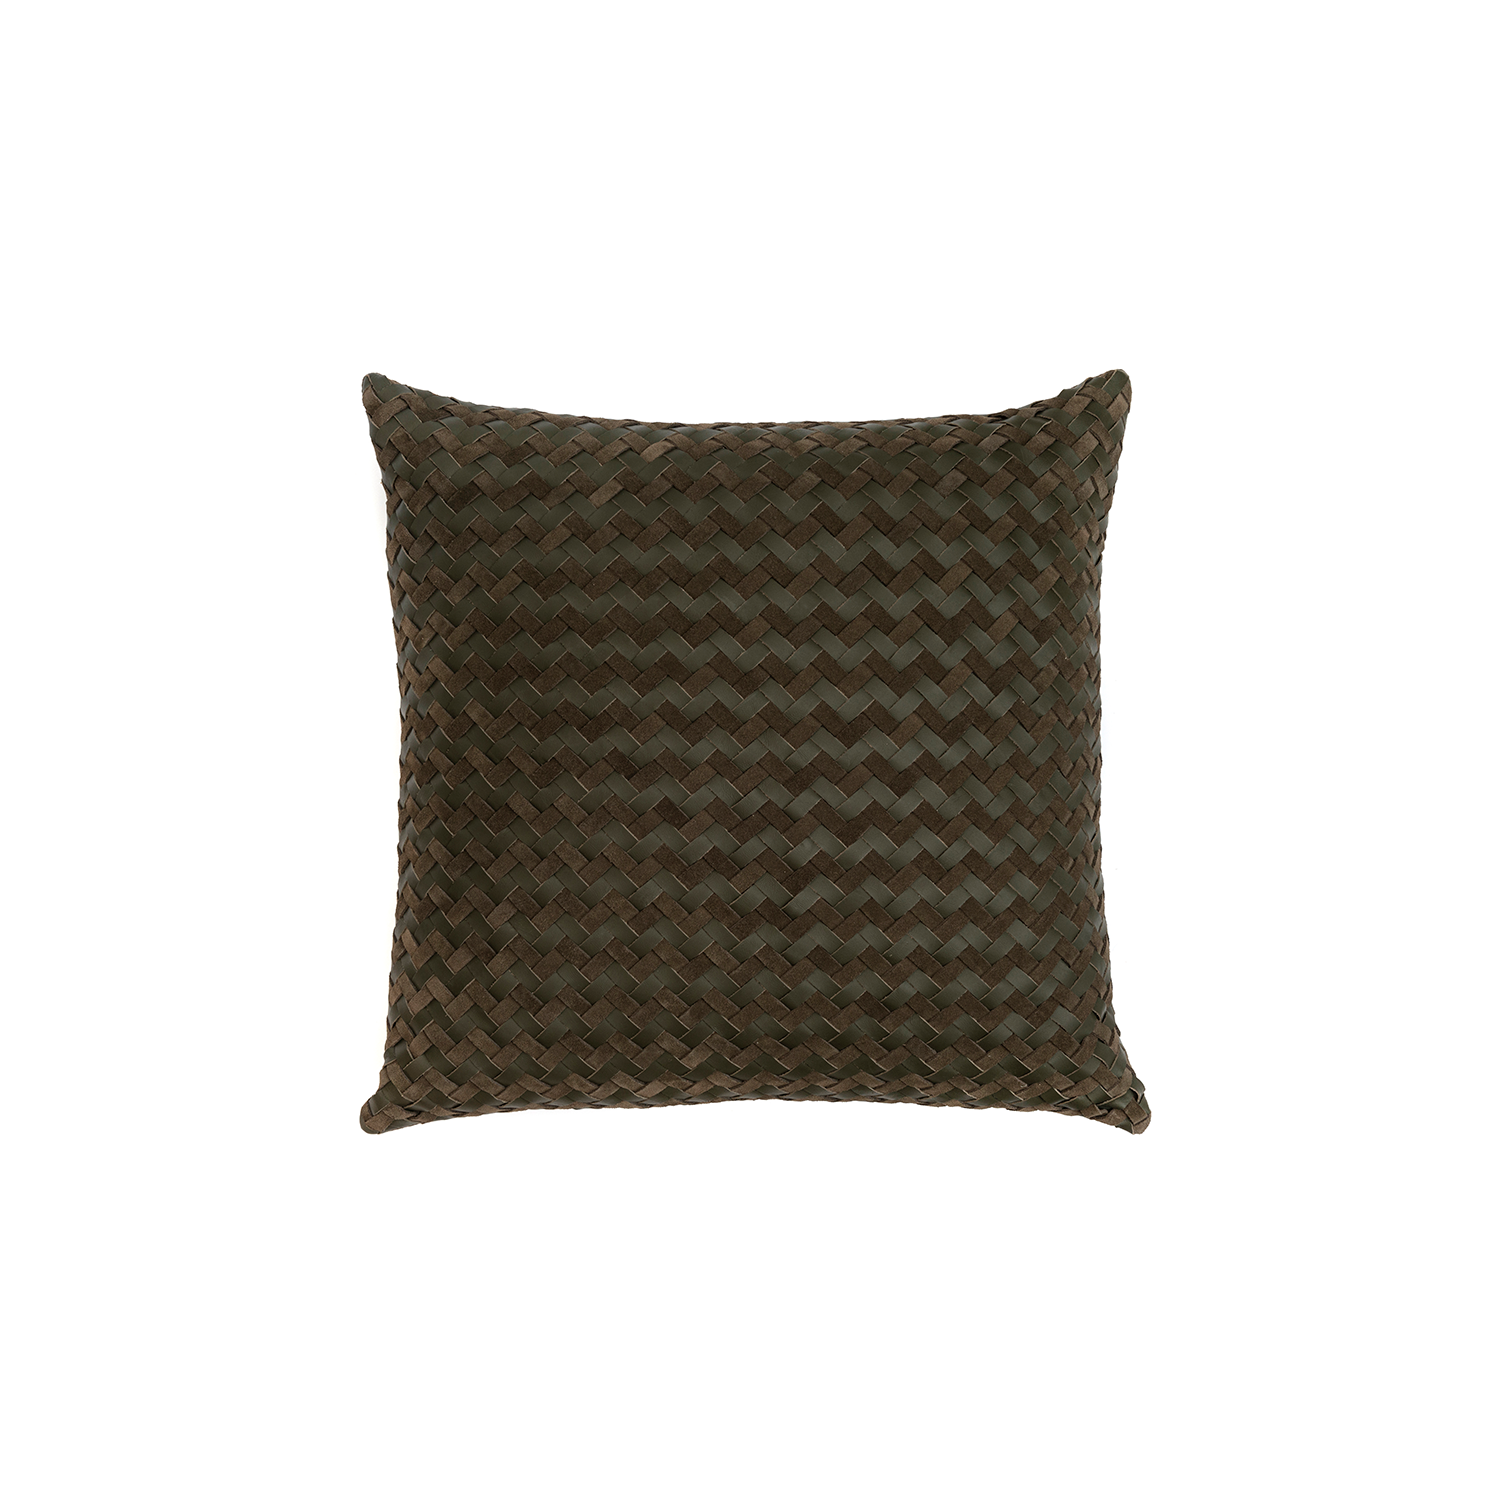 Maxi Aspen Woven Leather Cushion Square - The Maxi Aspen Woven Leather Cushion is designed to complement an ambient with a natural and sophisticated feeling. This cushion style is available in pleated leather or pleated suede leather. Elisa Atheniense woven handmade leather cushions are specially manufactured in Brazil using an exclusive treated leather that brings the soft feel touch to every single piece.   The front panel is handwoven in leather and the back panel is 100% Pes, made in Brazil.  The inner cushion is available in Hollow Fibre and European Duck Feathers, made in the UK.  Please enquire for more information and see colour chart for reference.   | Matter of Stuff